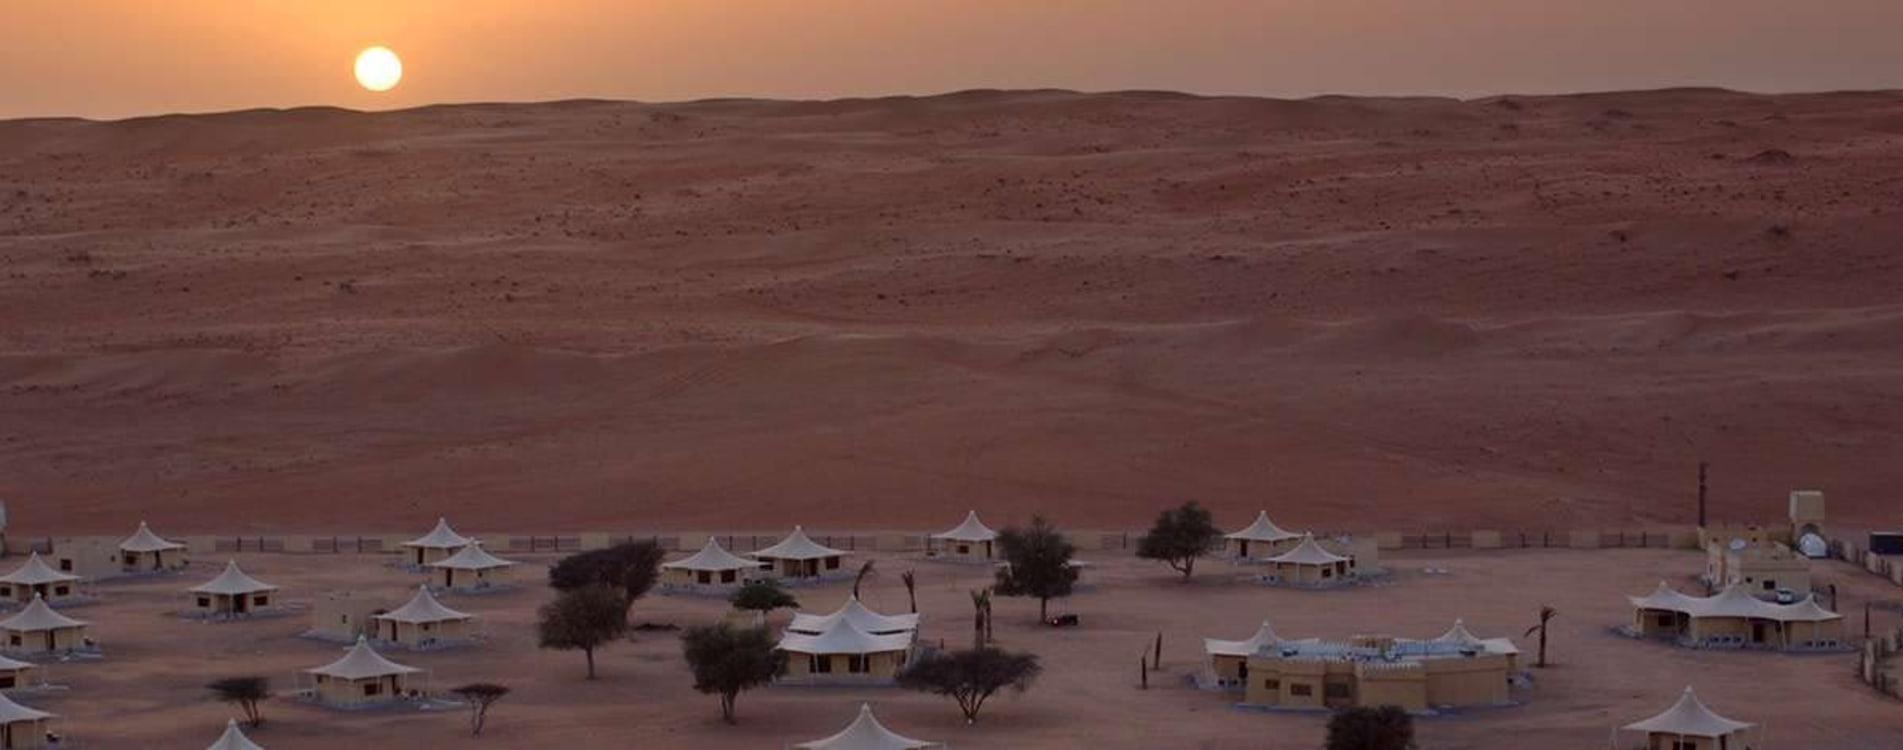 Oman-Desert-Nights-Camp-Overview.jpg